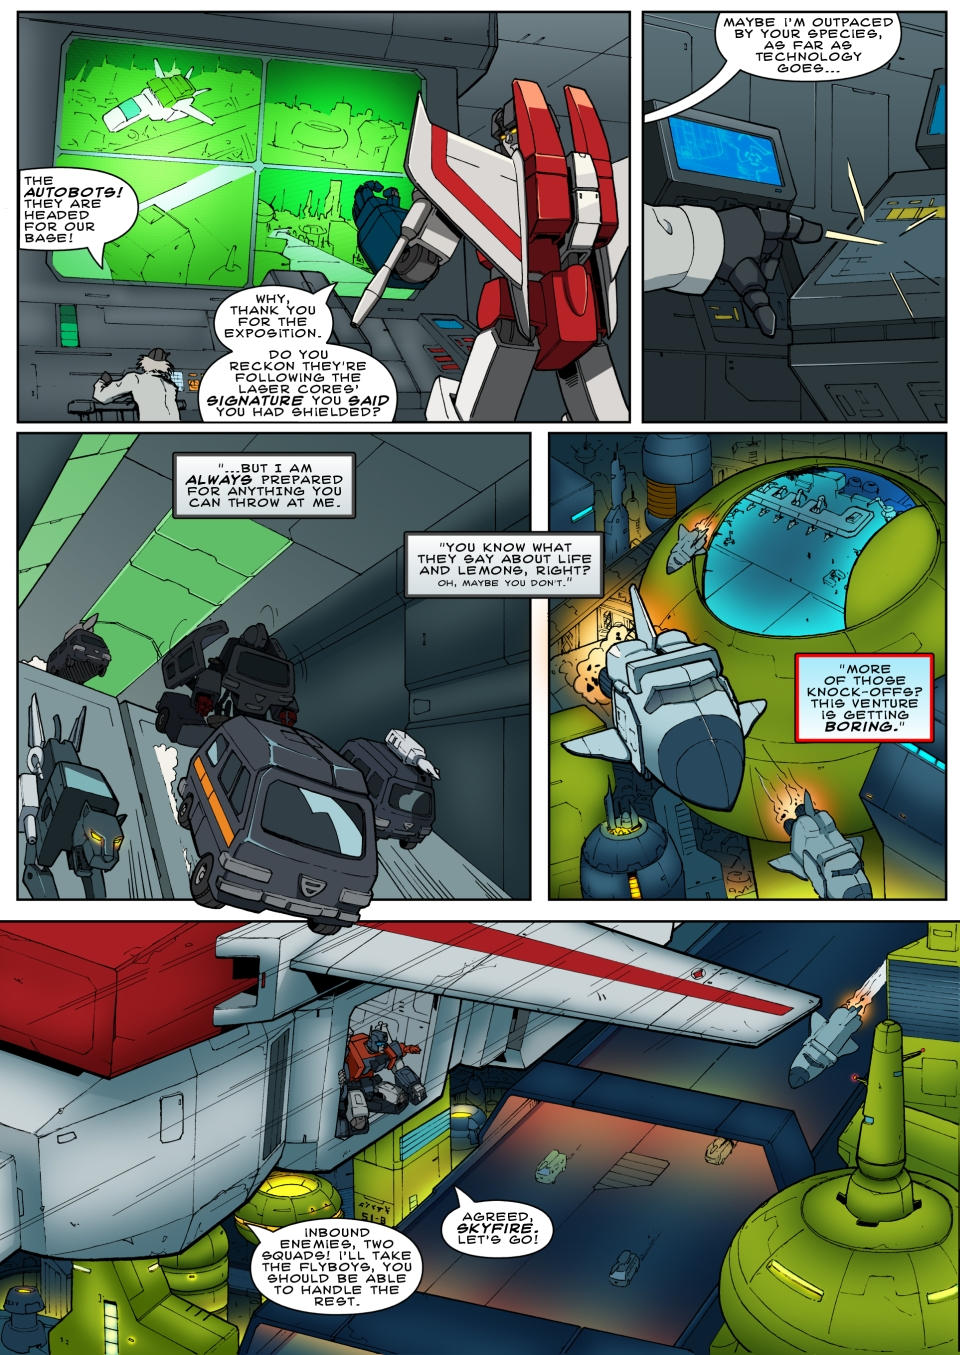 Attack of the DIAclones page 20